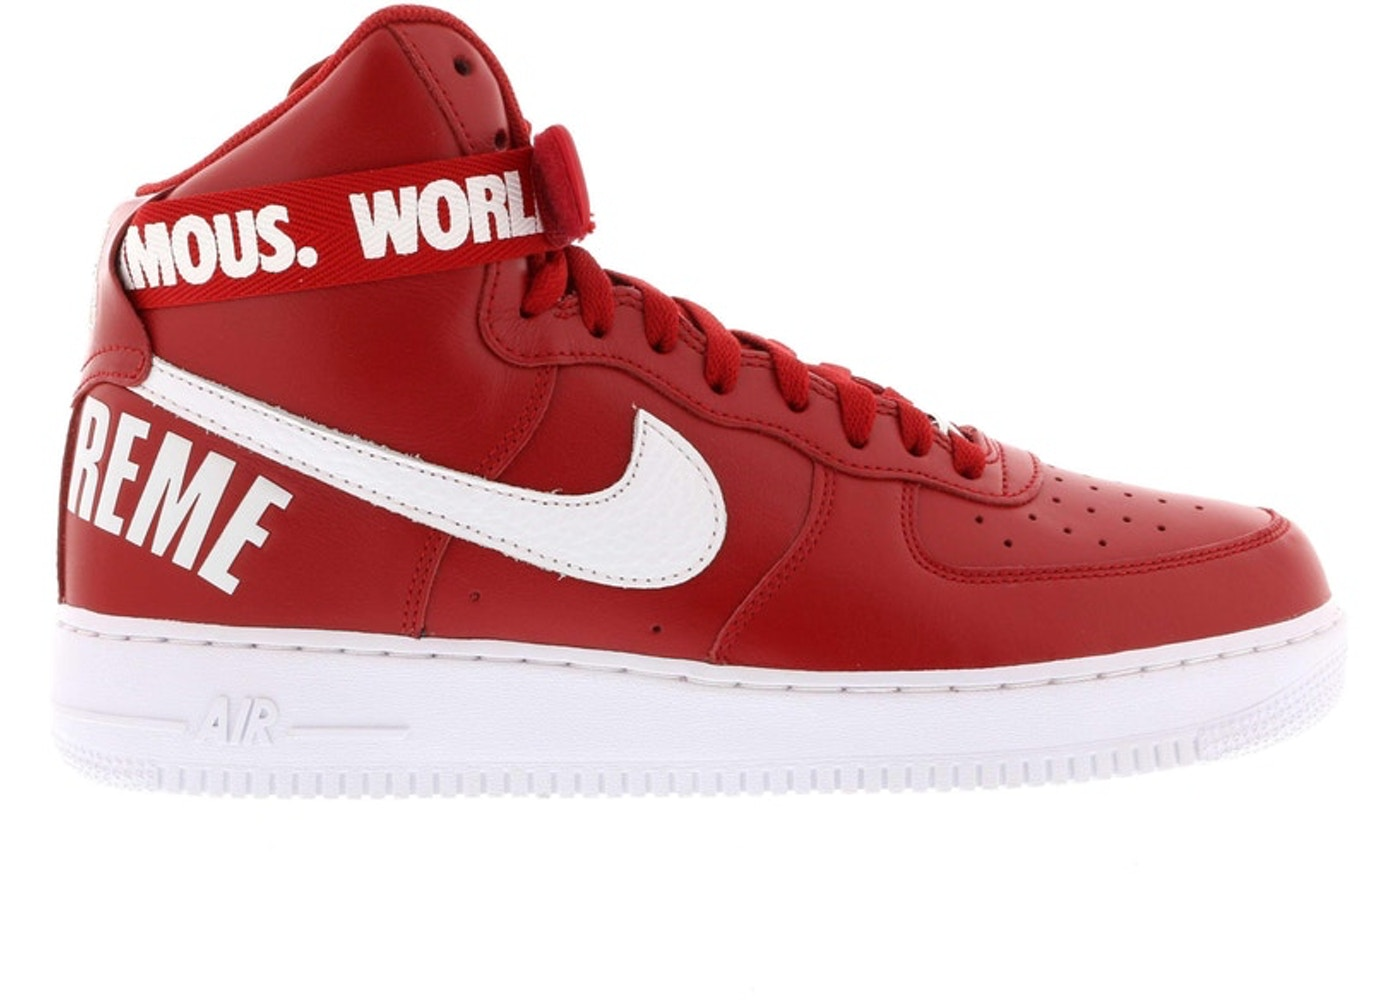 1b8270c8eb7f Air Force 1 High Supreme World Famous Red - 698696-610